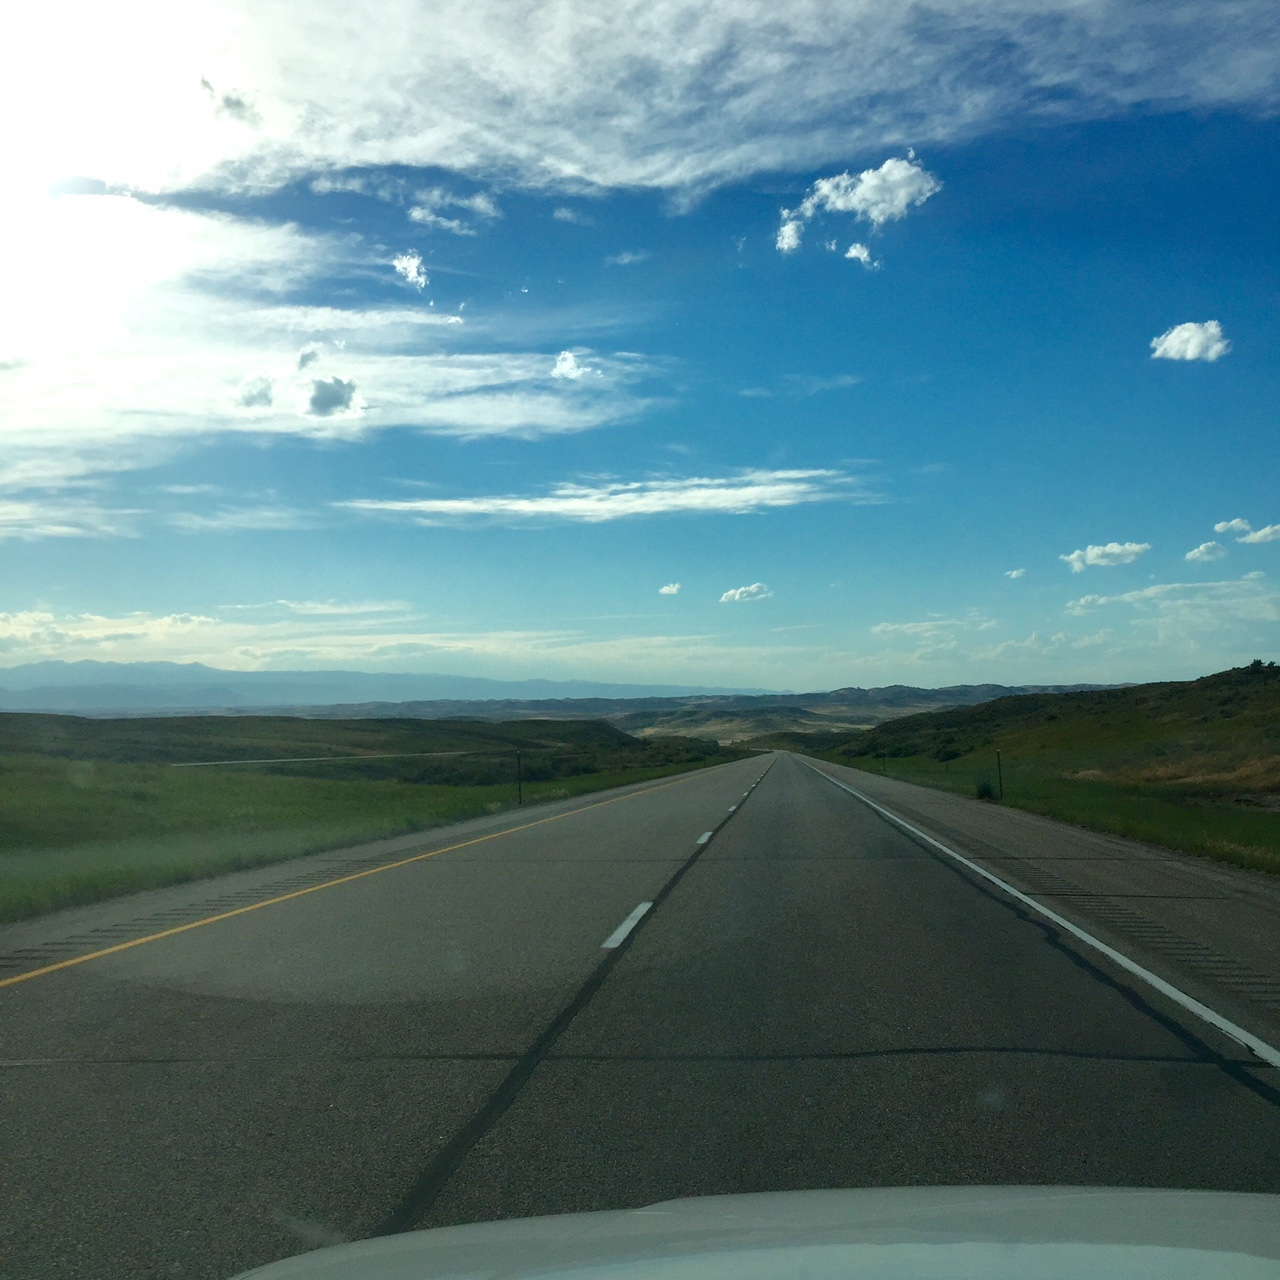 The Buffalo WY exit is now less than a mile away. It was a beautiful evening to stop.